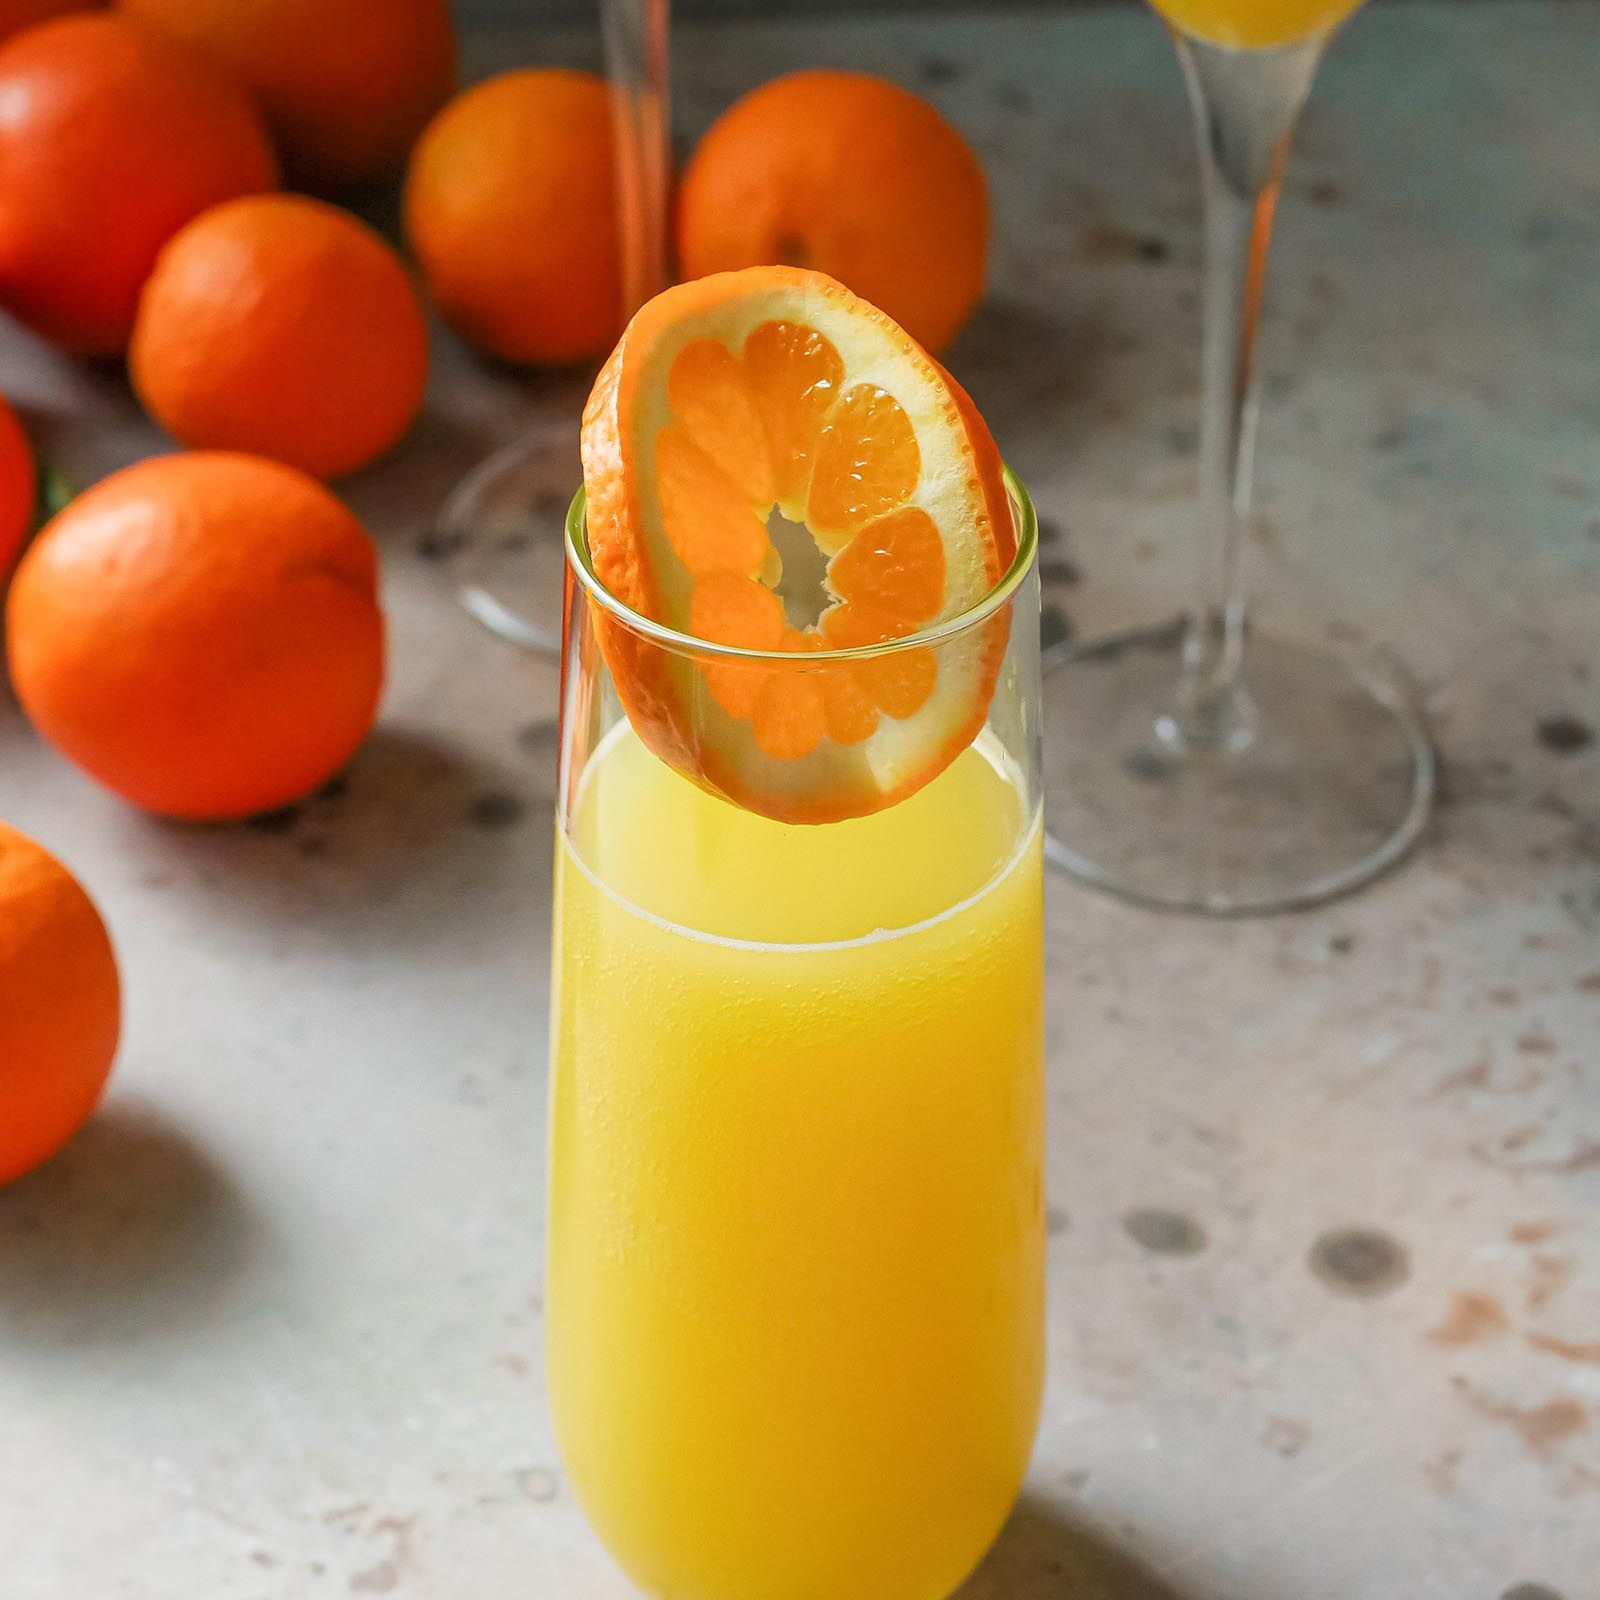 Eeasy mimosa in a glass with an orange slice inside. Two flutes of mimosa are behind the glass and oranges are behind the drinks.